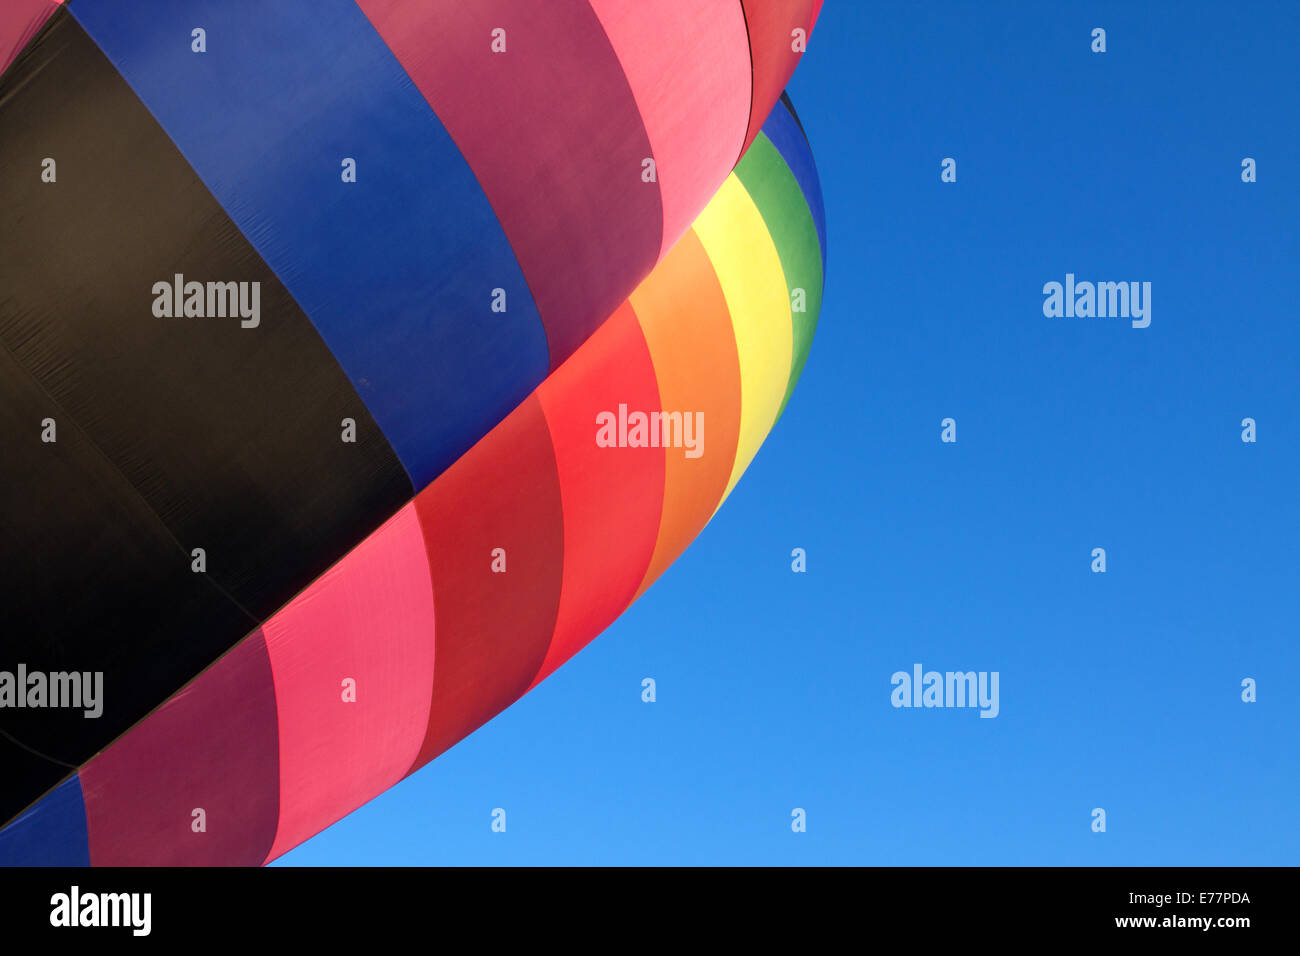 Rainbow-colored hot air balloon angling into view against a clear blue sky Stock Photo